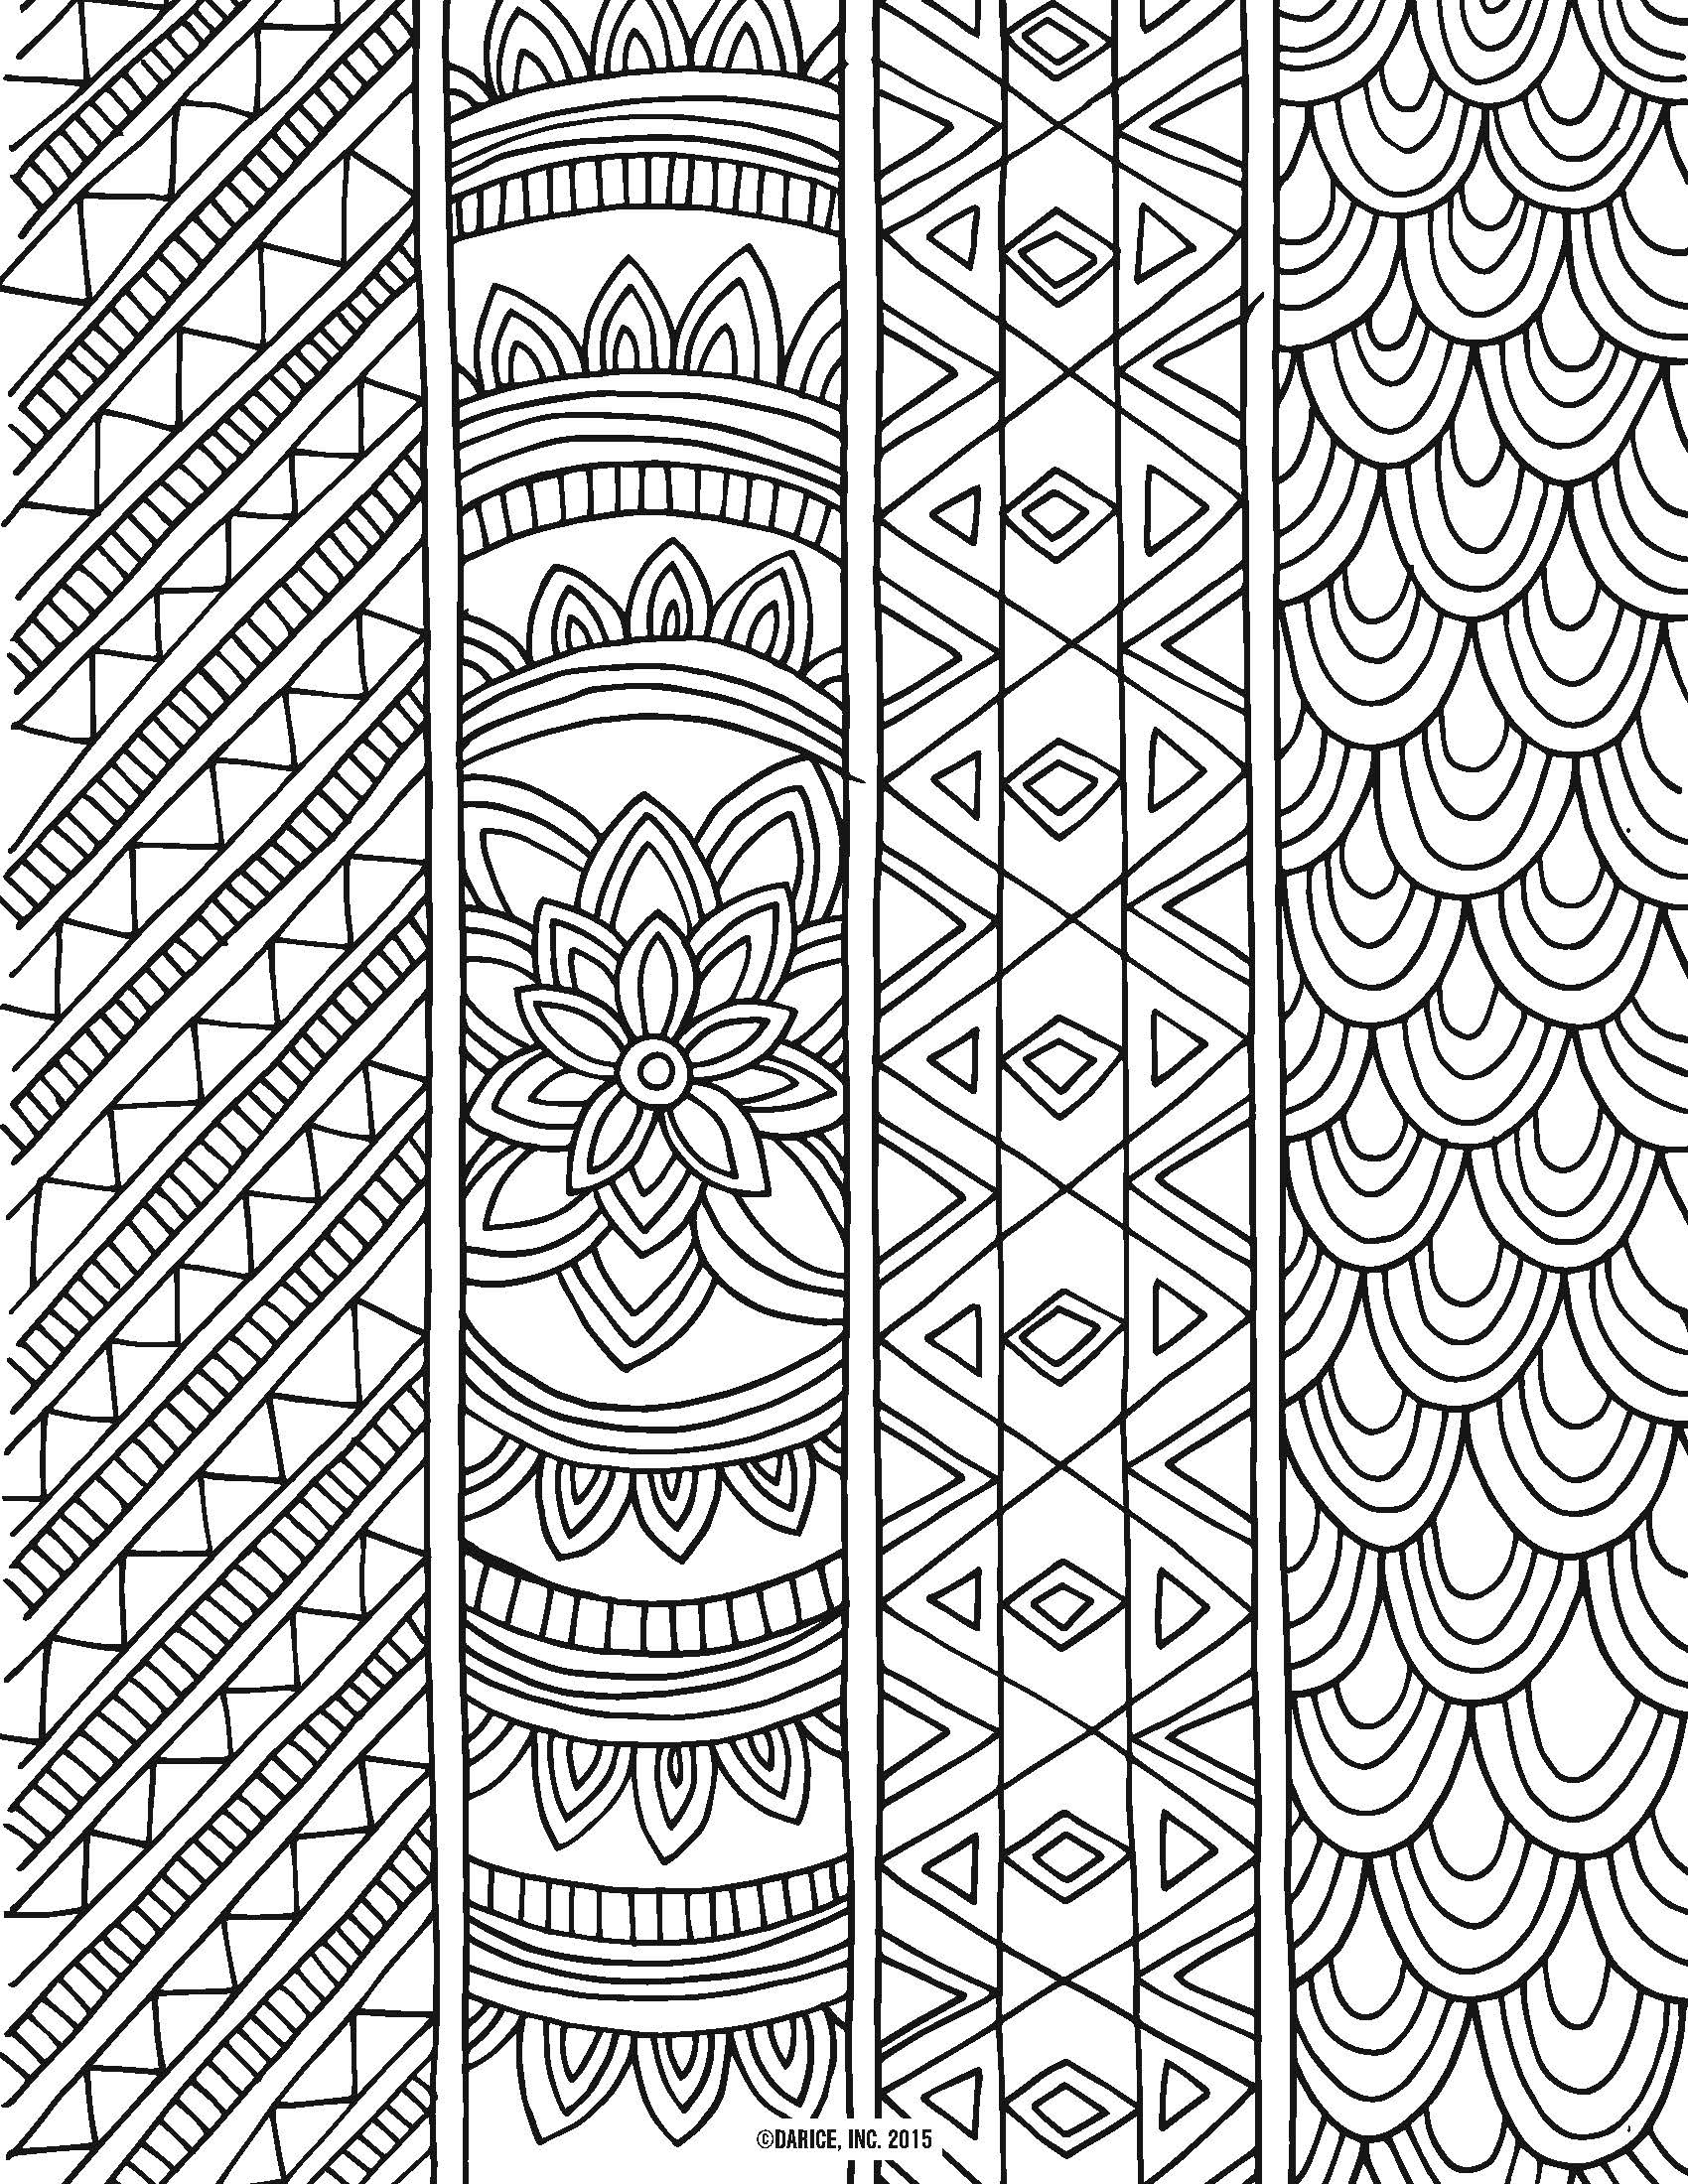 Coloring ~ Remarkable Printable Coloring Book Compromise Colouring - Free Printable Coloring Books Pdf